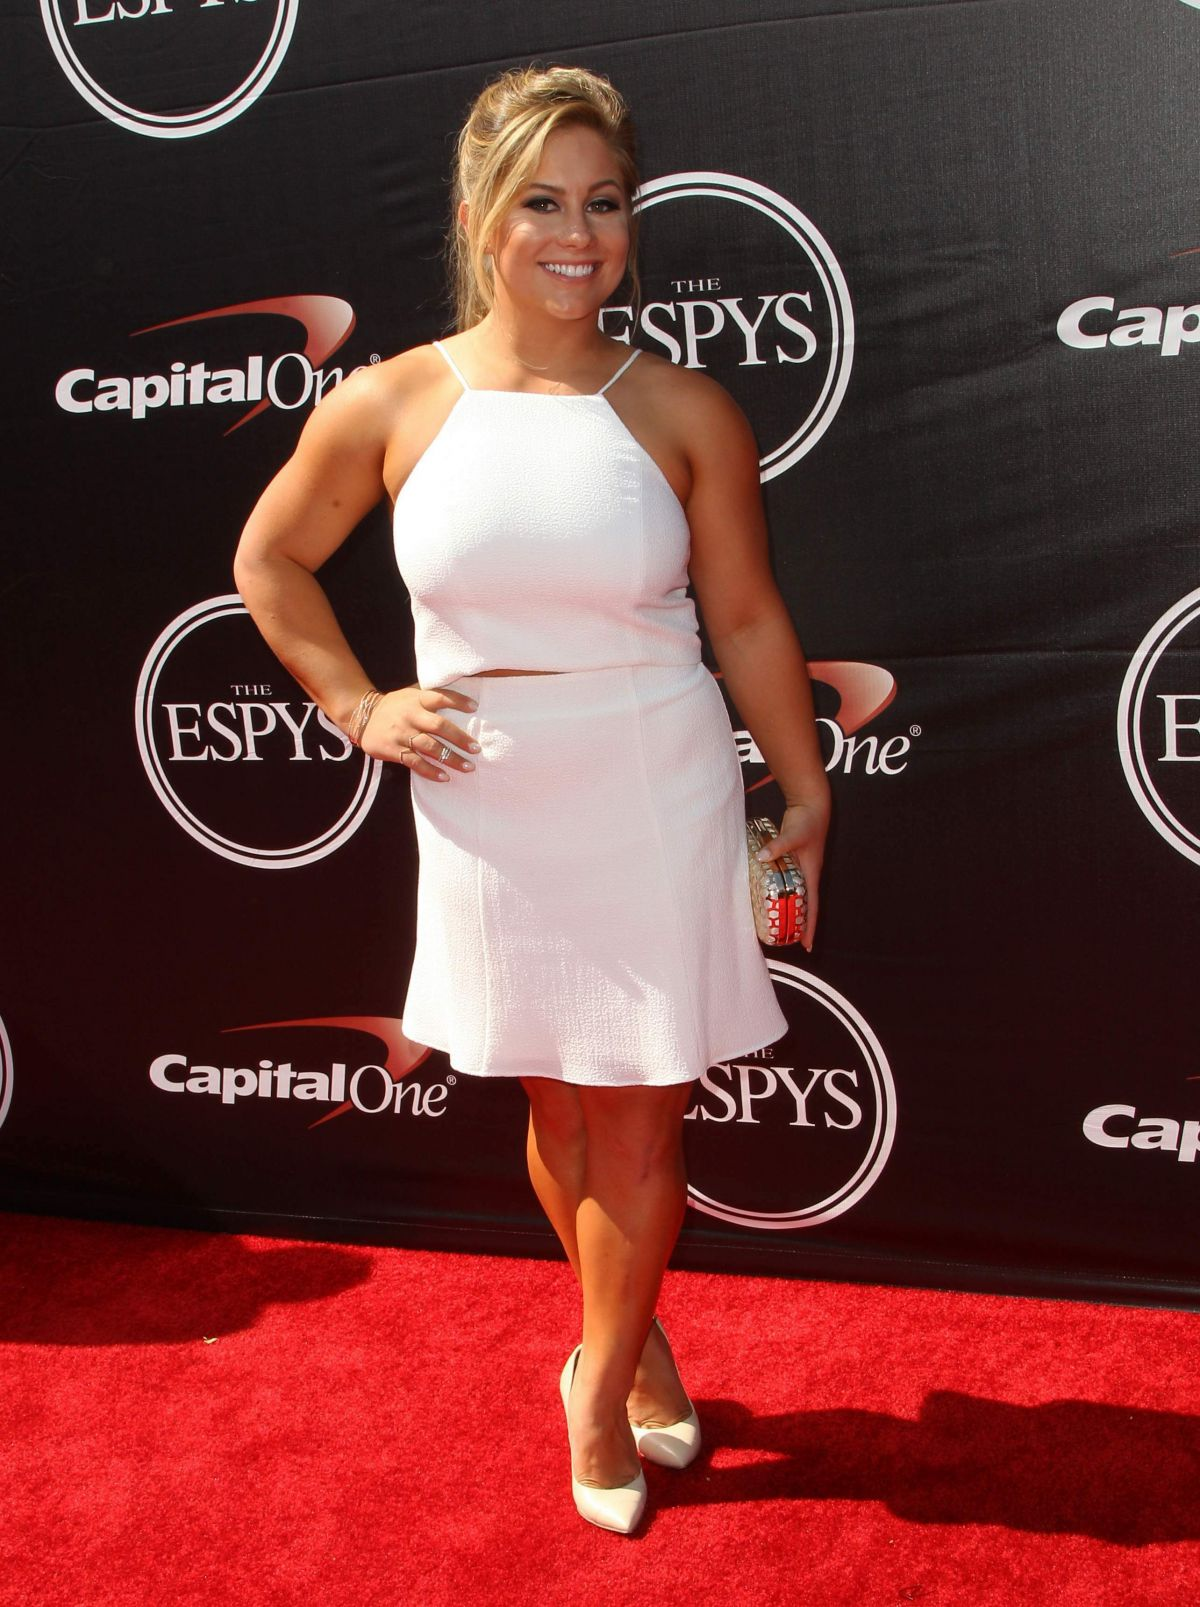 SHAWN JOHNSON at 2015 Espys Awards in Los Angeles